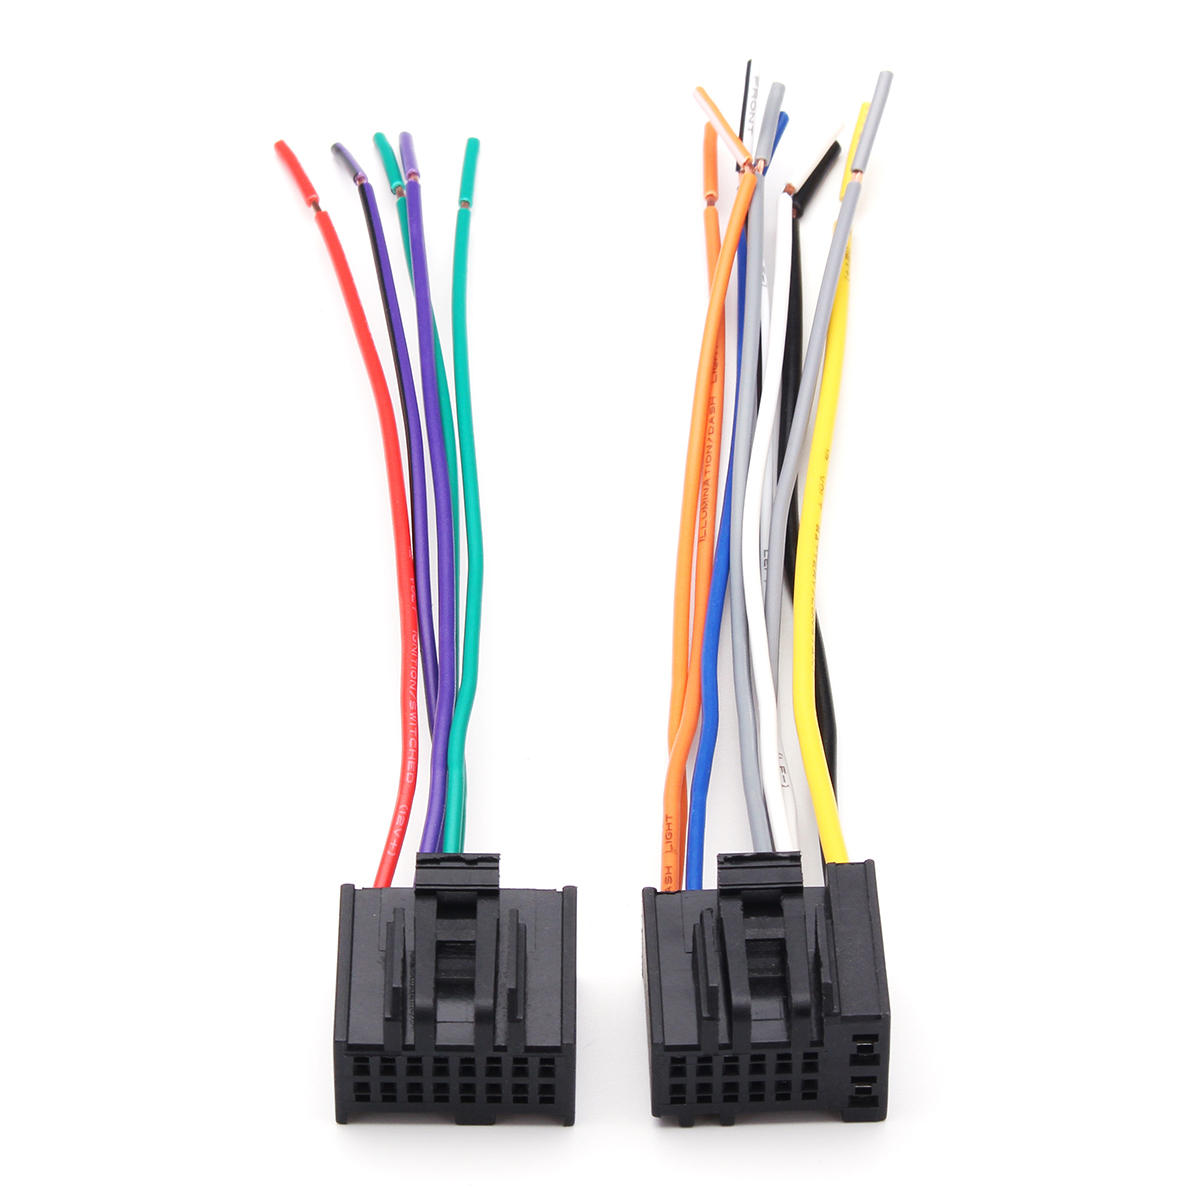 2Pcs Car Radio Stereo Speaker Wiring Harness Plug Cable for Chevrolet Best Buy Car Stereo Wiring Harness on car speaker, car stereo alternators, 95 sc400 stereo harness, car stereo sleeve, leather dog harness, car wiring supplies, car stereo with ipod integration, car fuse, car stereo cover,